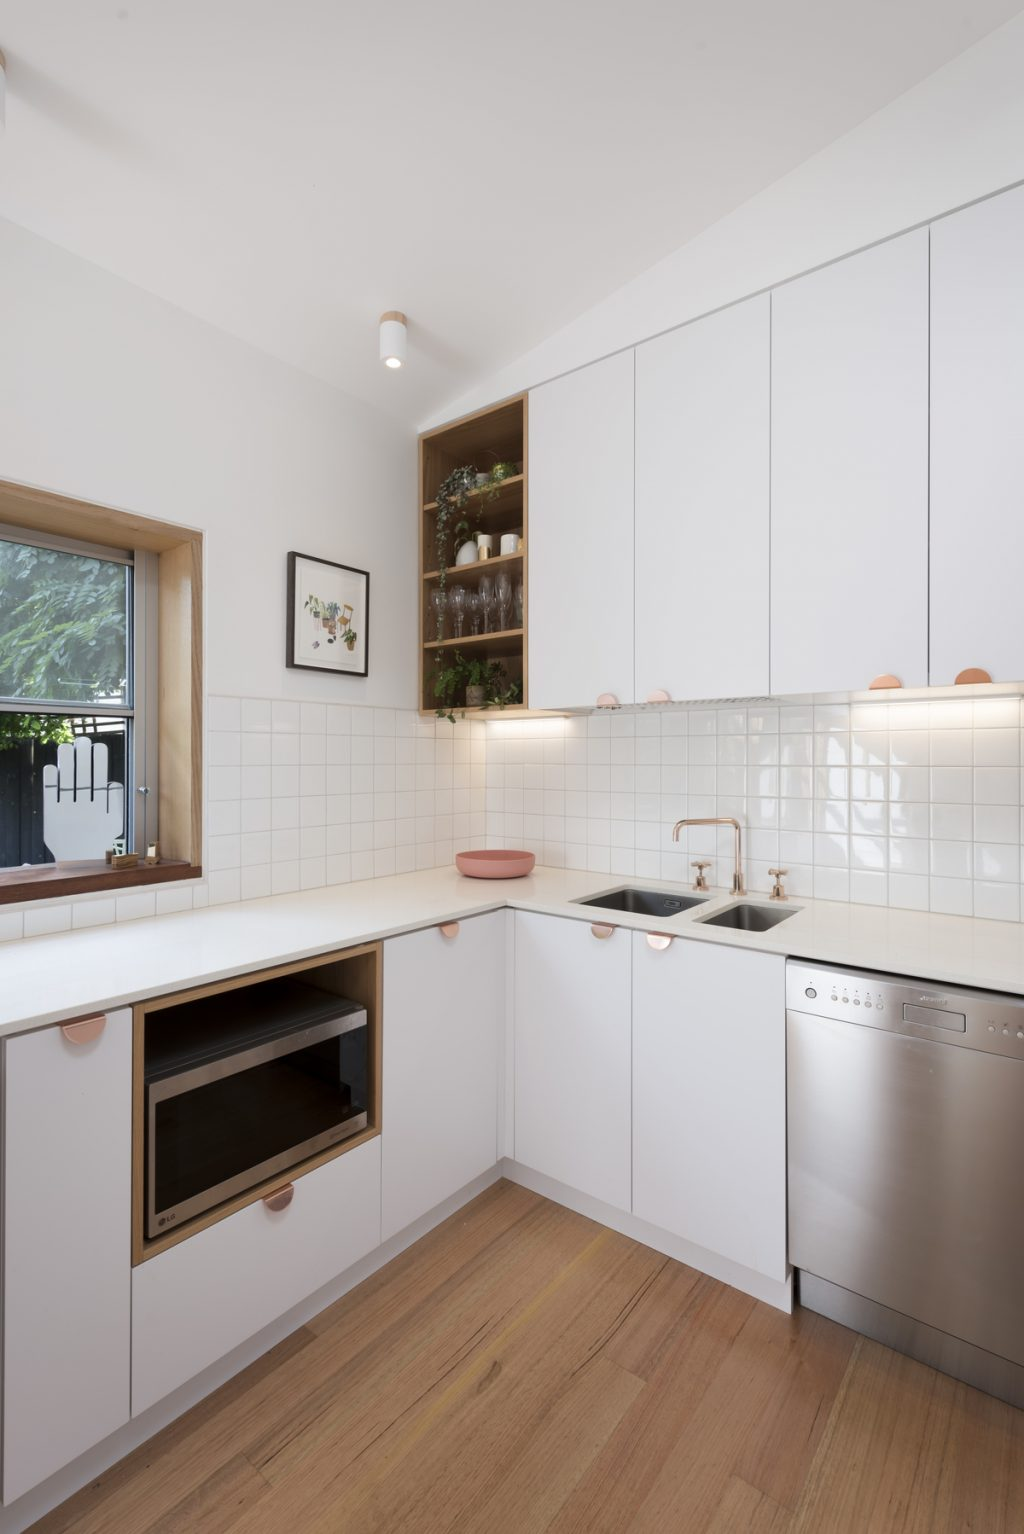 5 Cheap and Easy Ways to Improve Your Kitchen